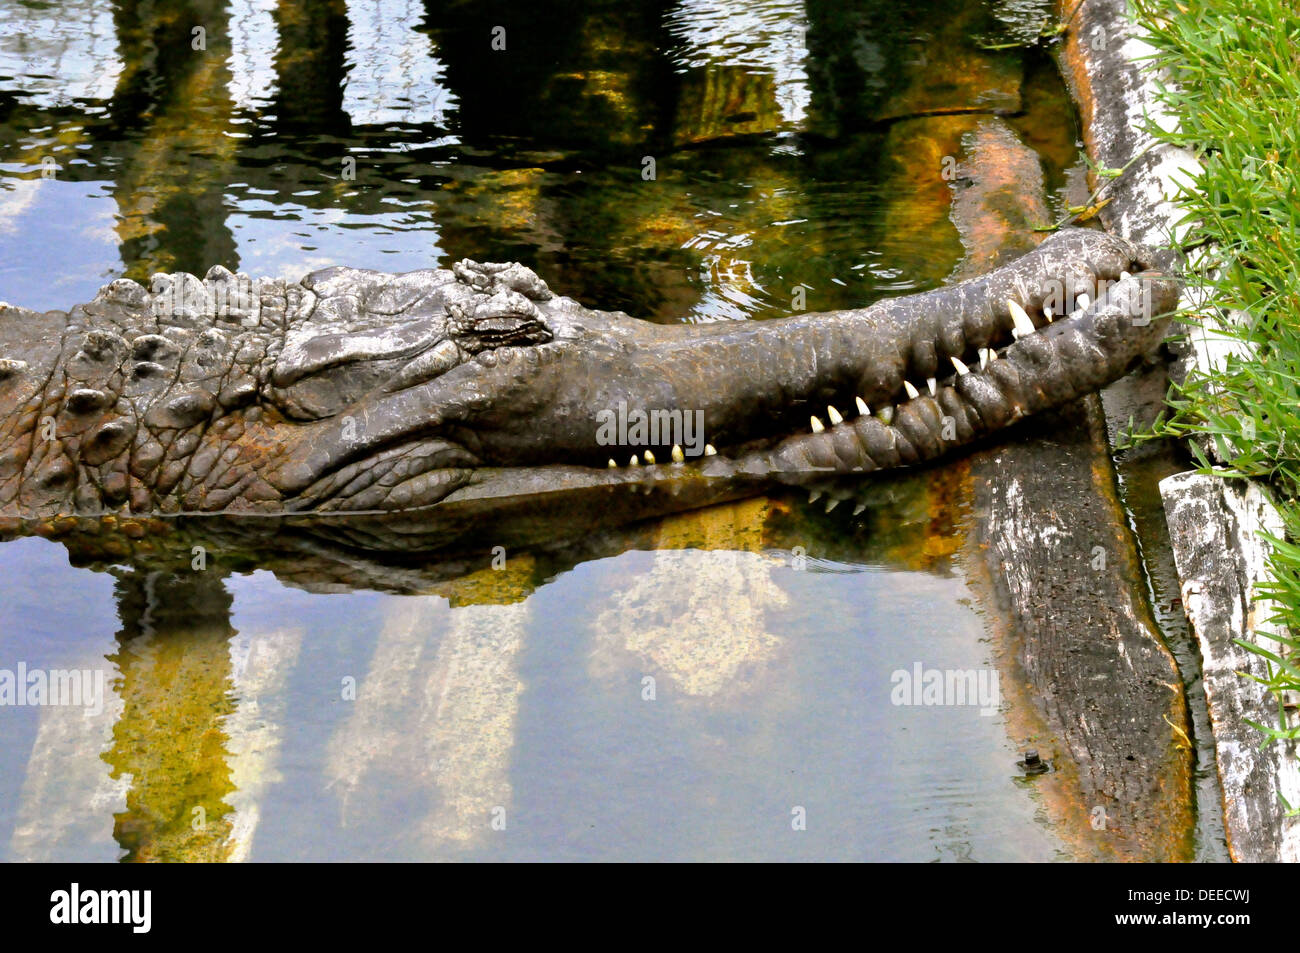 Crocodile snoozes on the bank - Stock Image